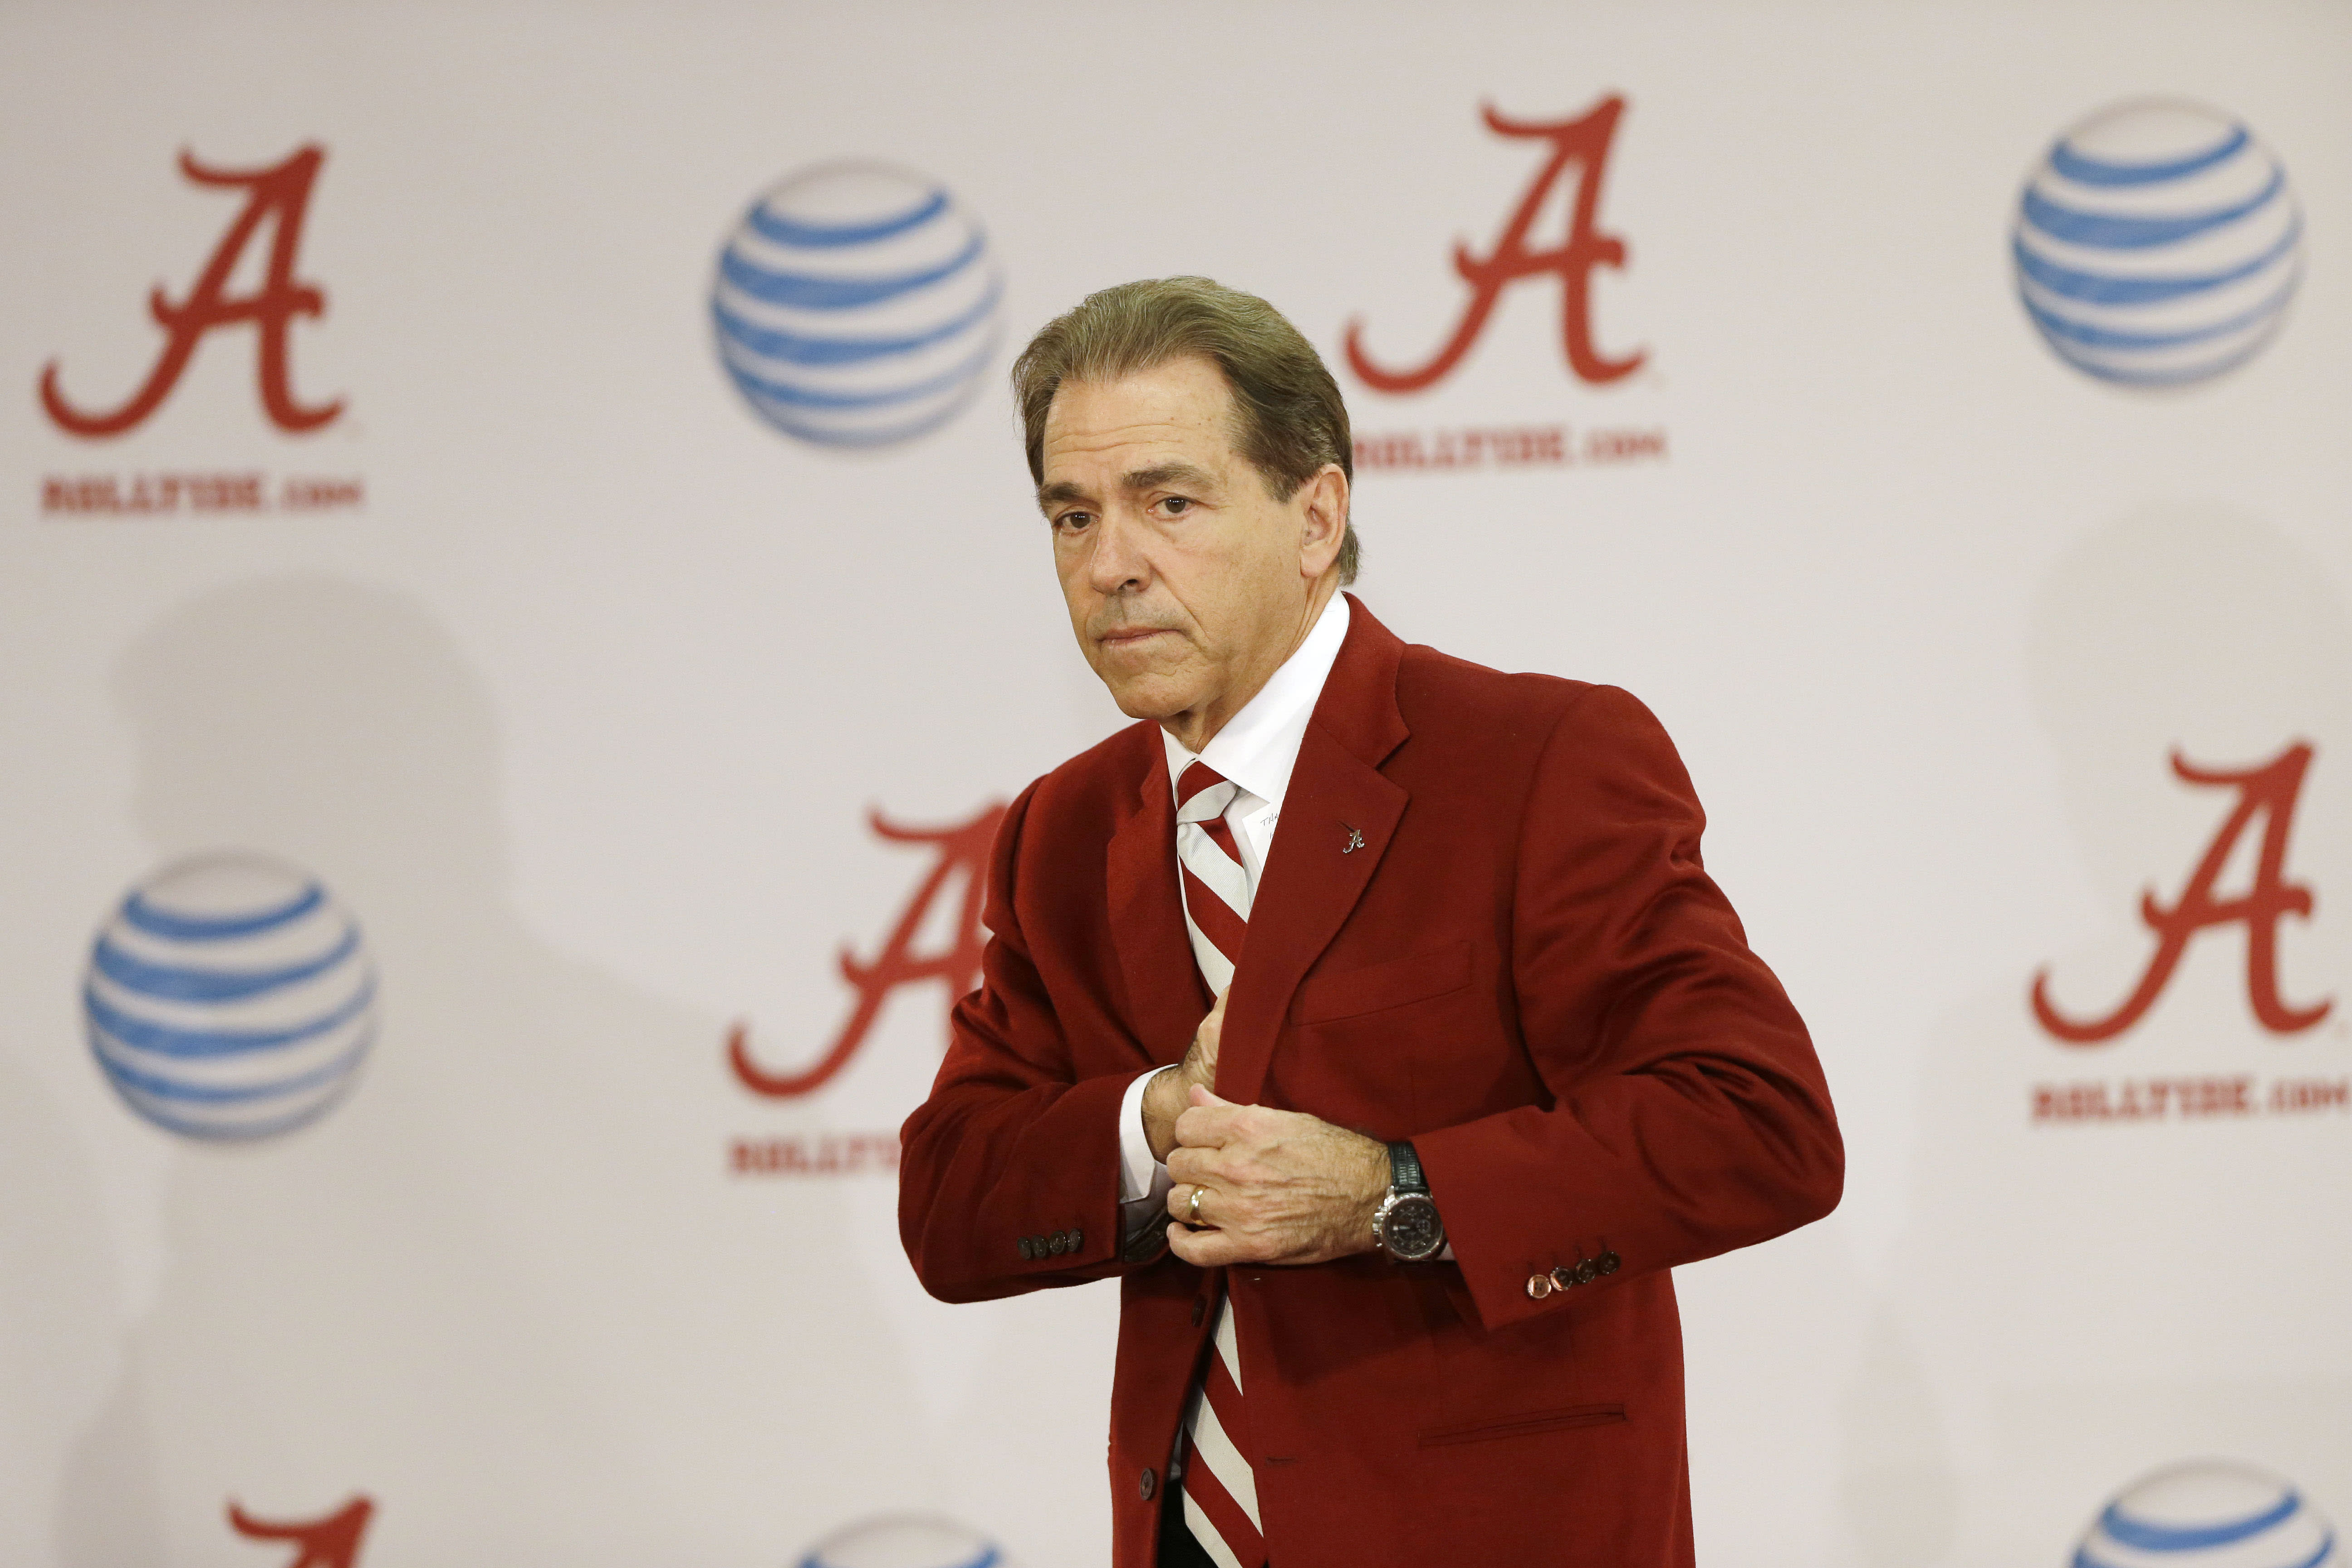 Nick Saban says expanded Playoff couldn't 'co-exist' with other bowls